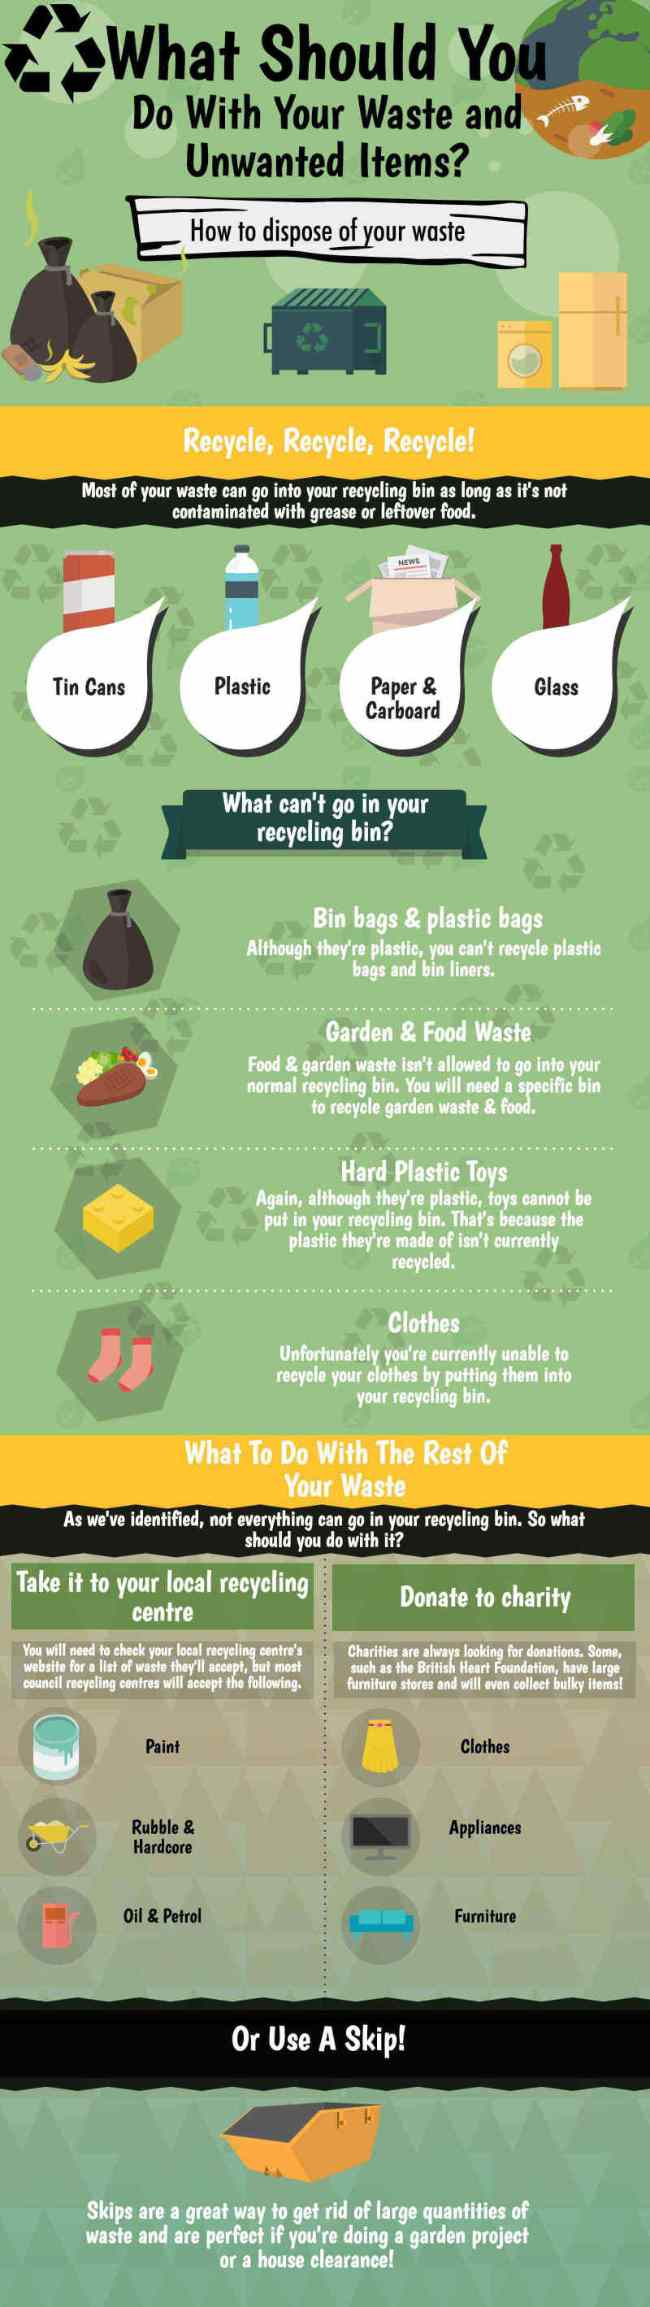 What to do with your waste